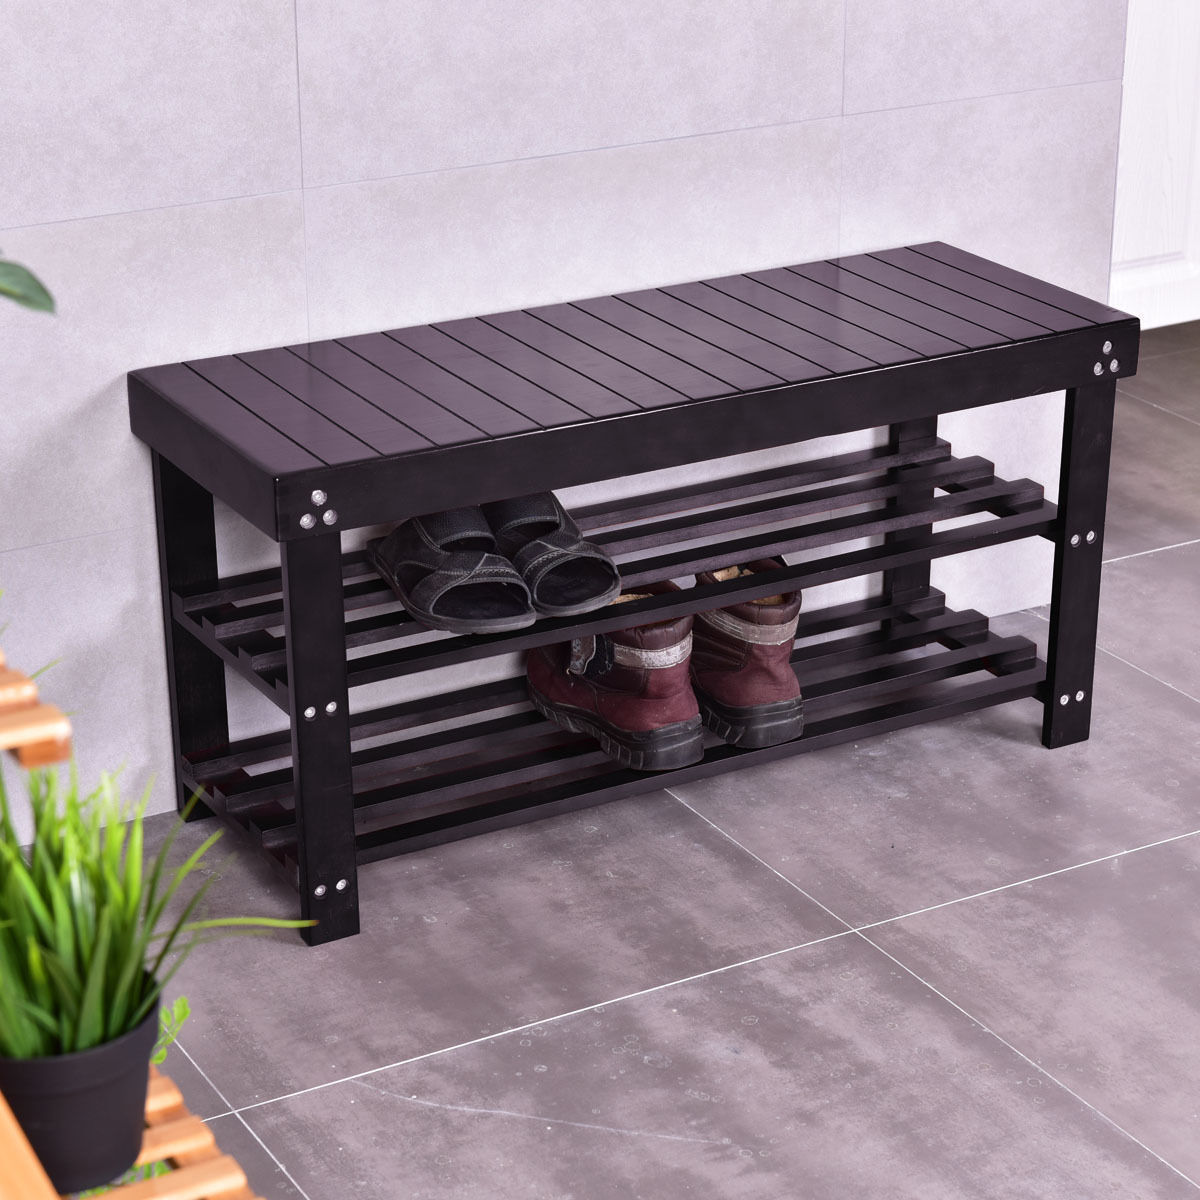 Costway Solid Wooden Shoe Bench Storage Racks Seat Organizer Entryway  Hallway Black